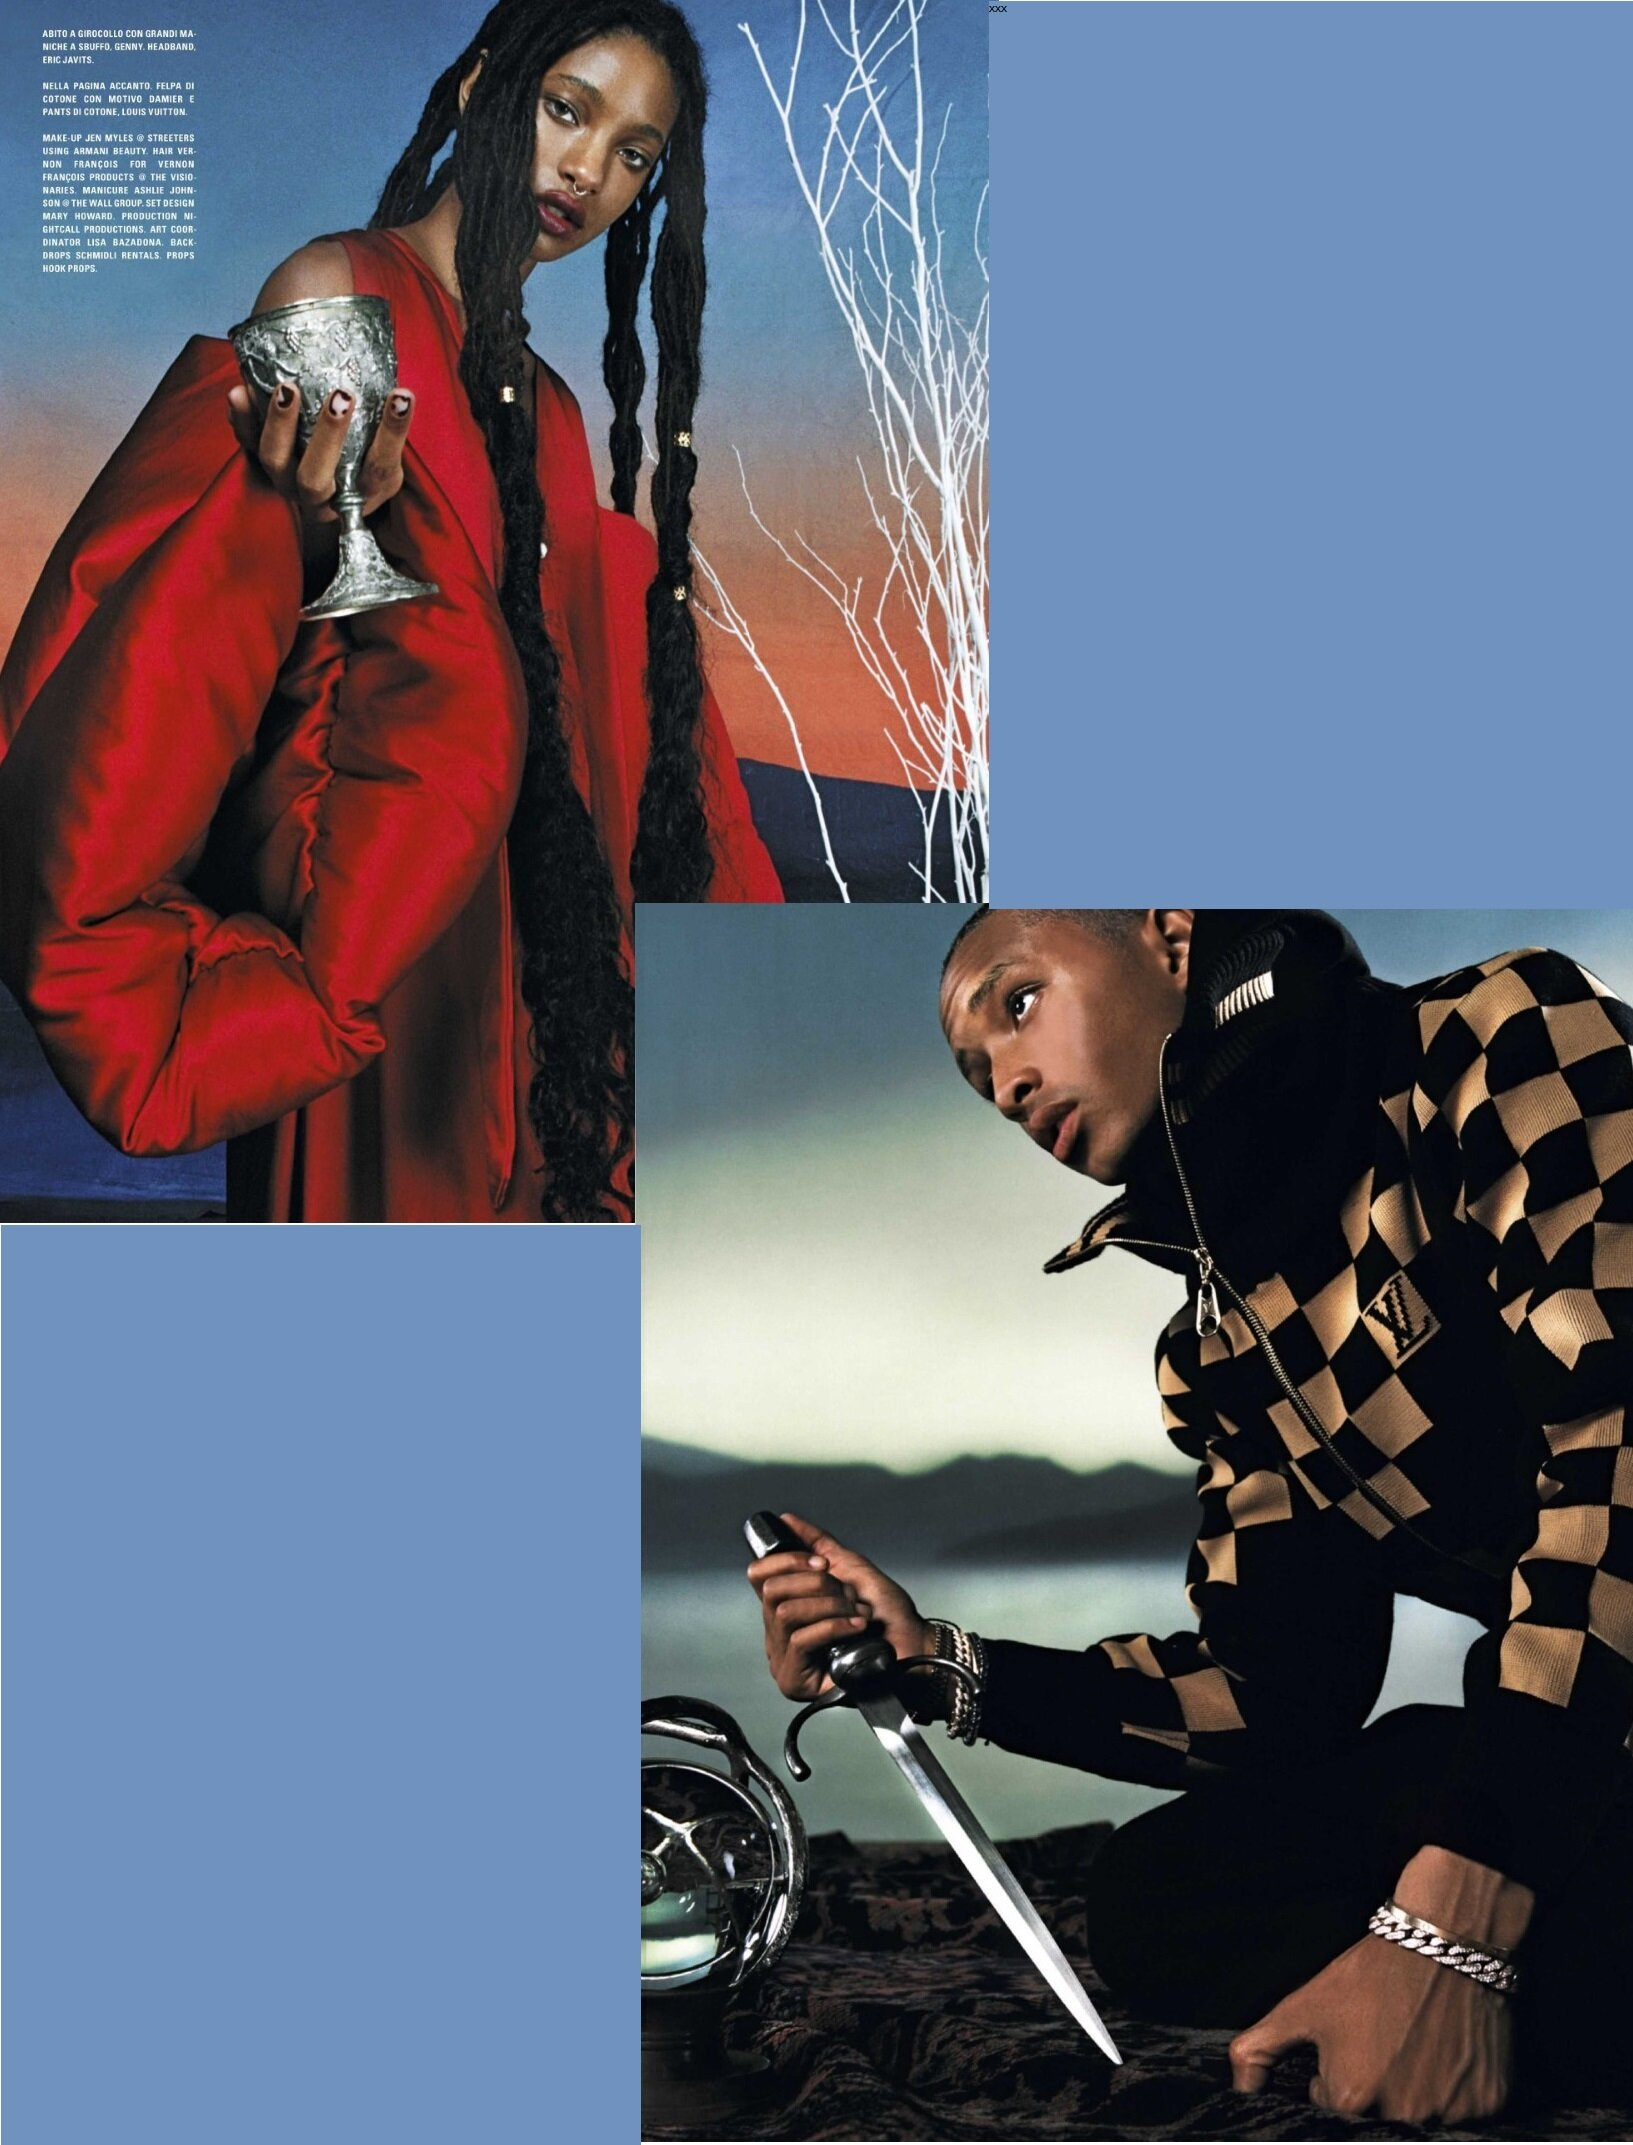 Jaden + Willow Smith Hugo Comte Vogue Italia Oct 2019 (5) combo.jpg